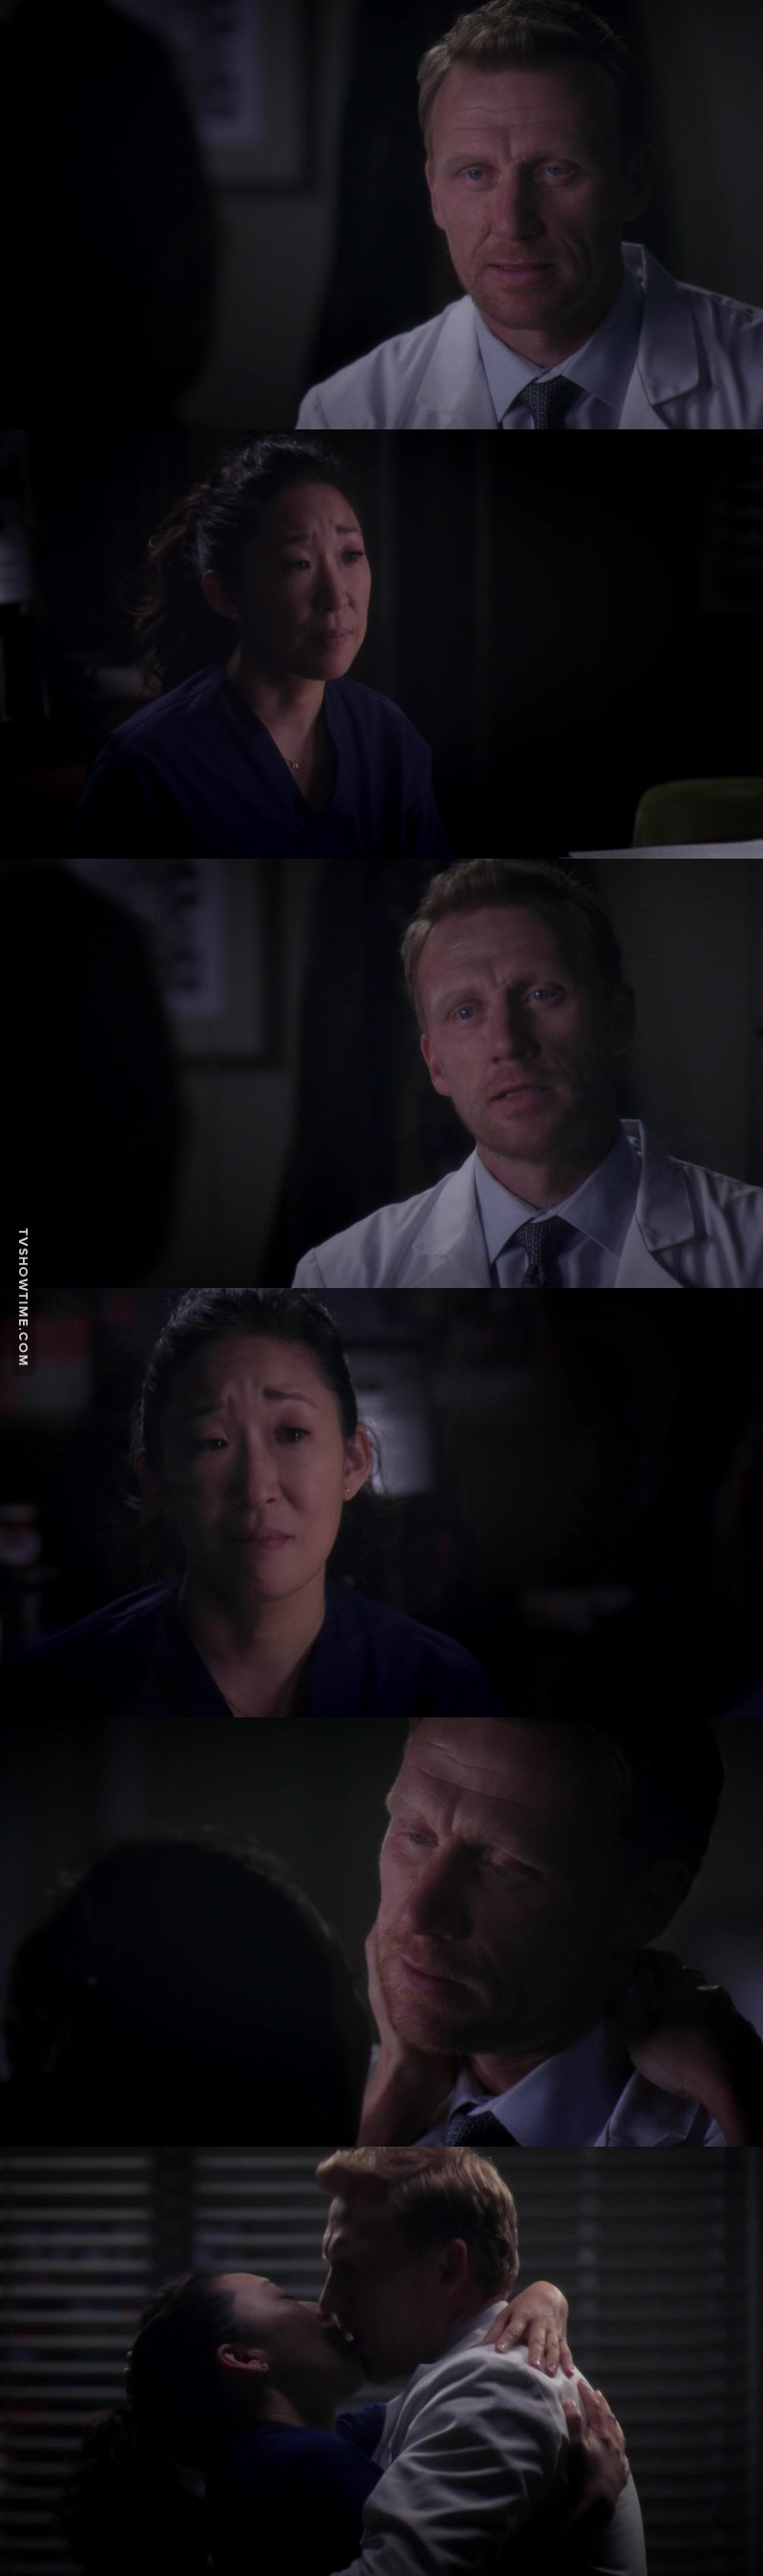 I will miss them, they were messed up of course but I shipped them a lot. 💔